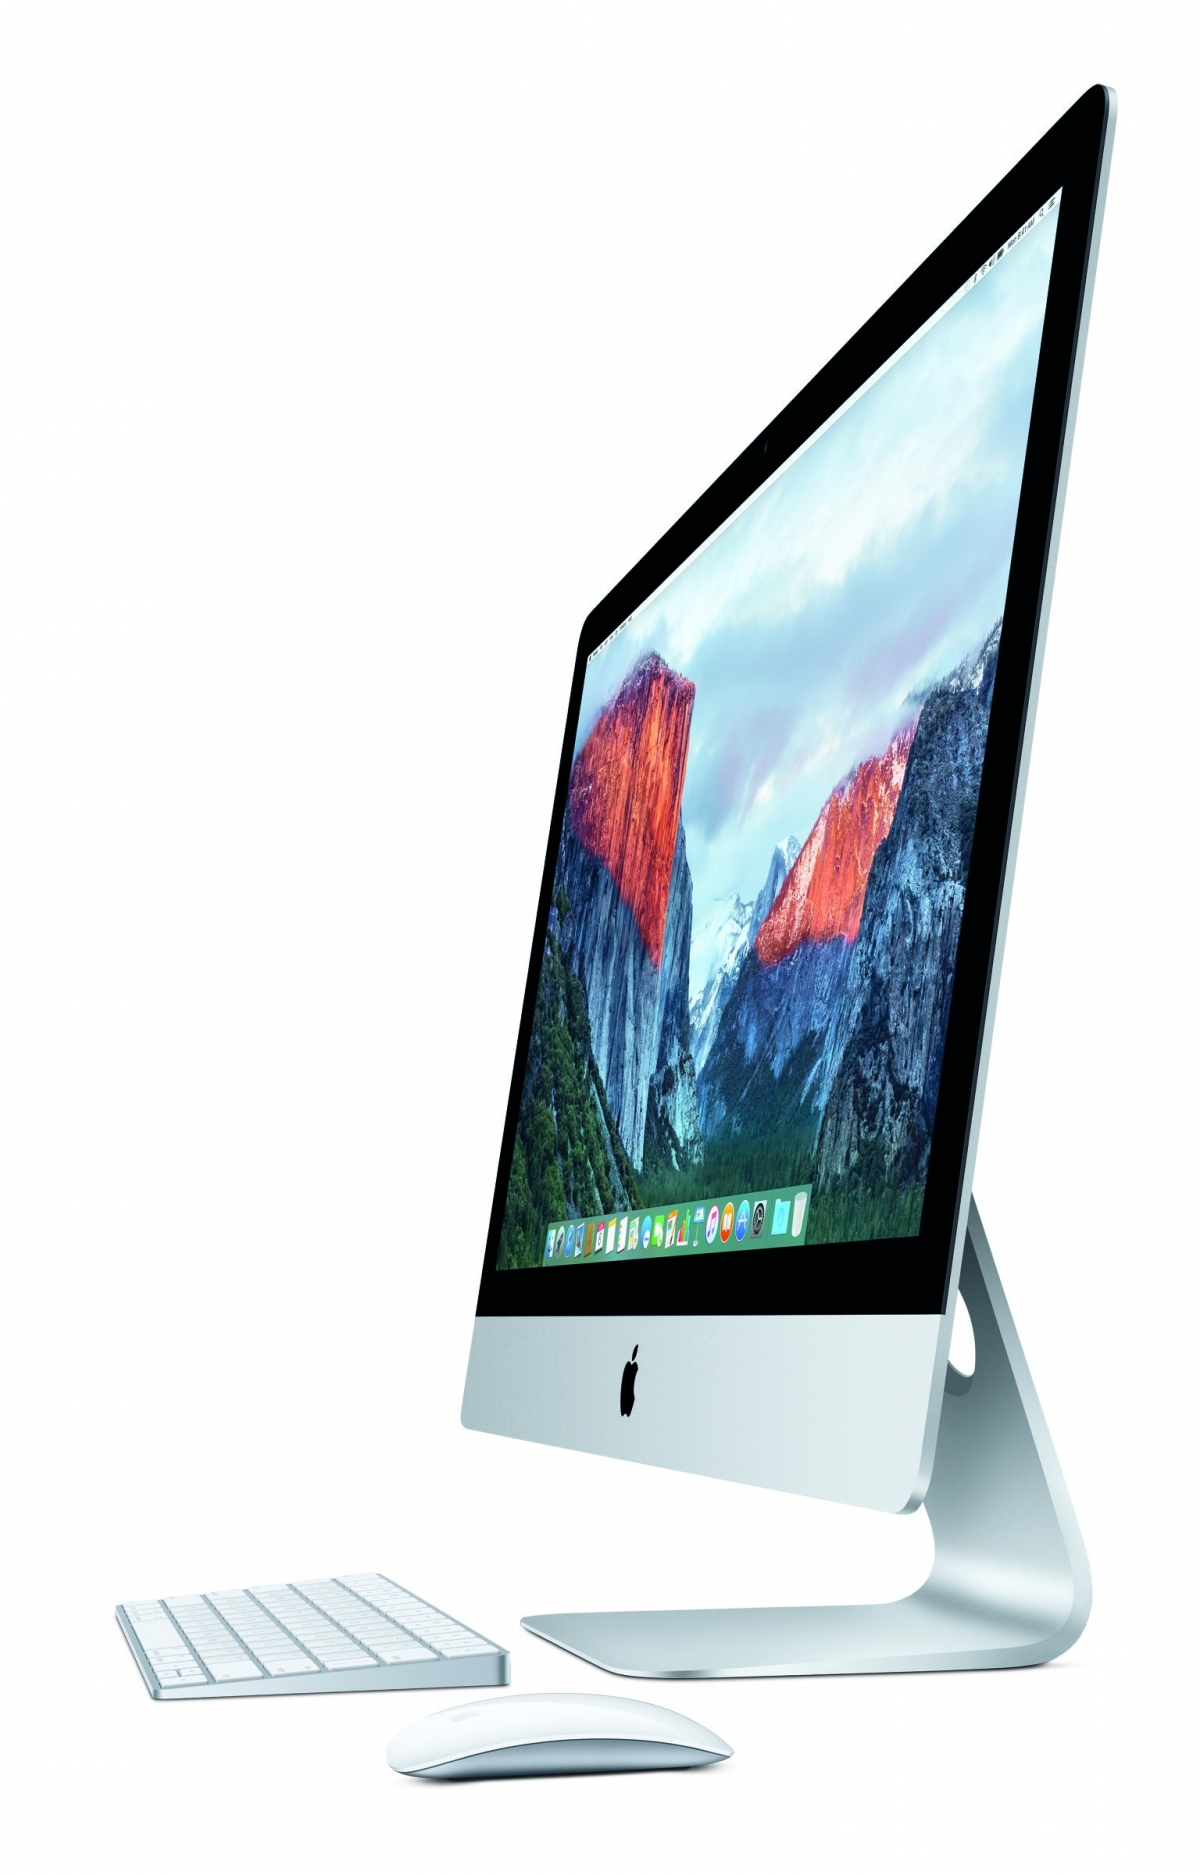 21.5in iMac with 4K Retina display